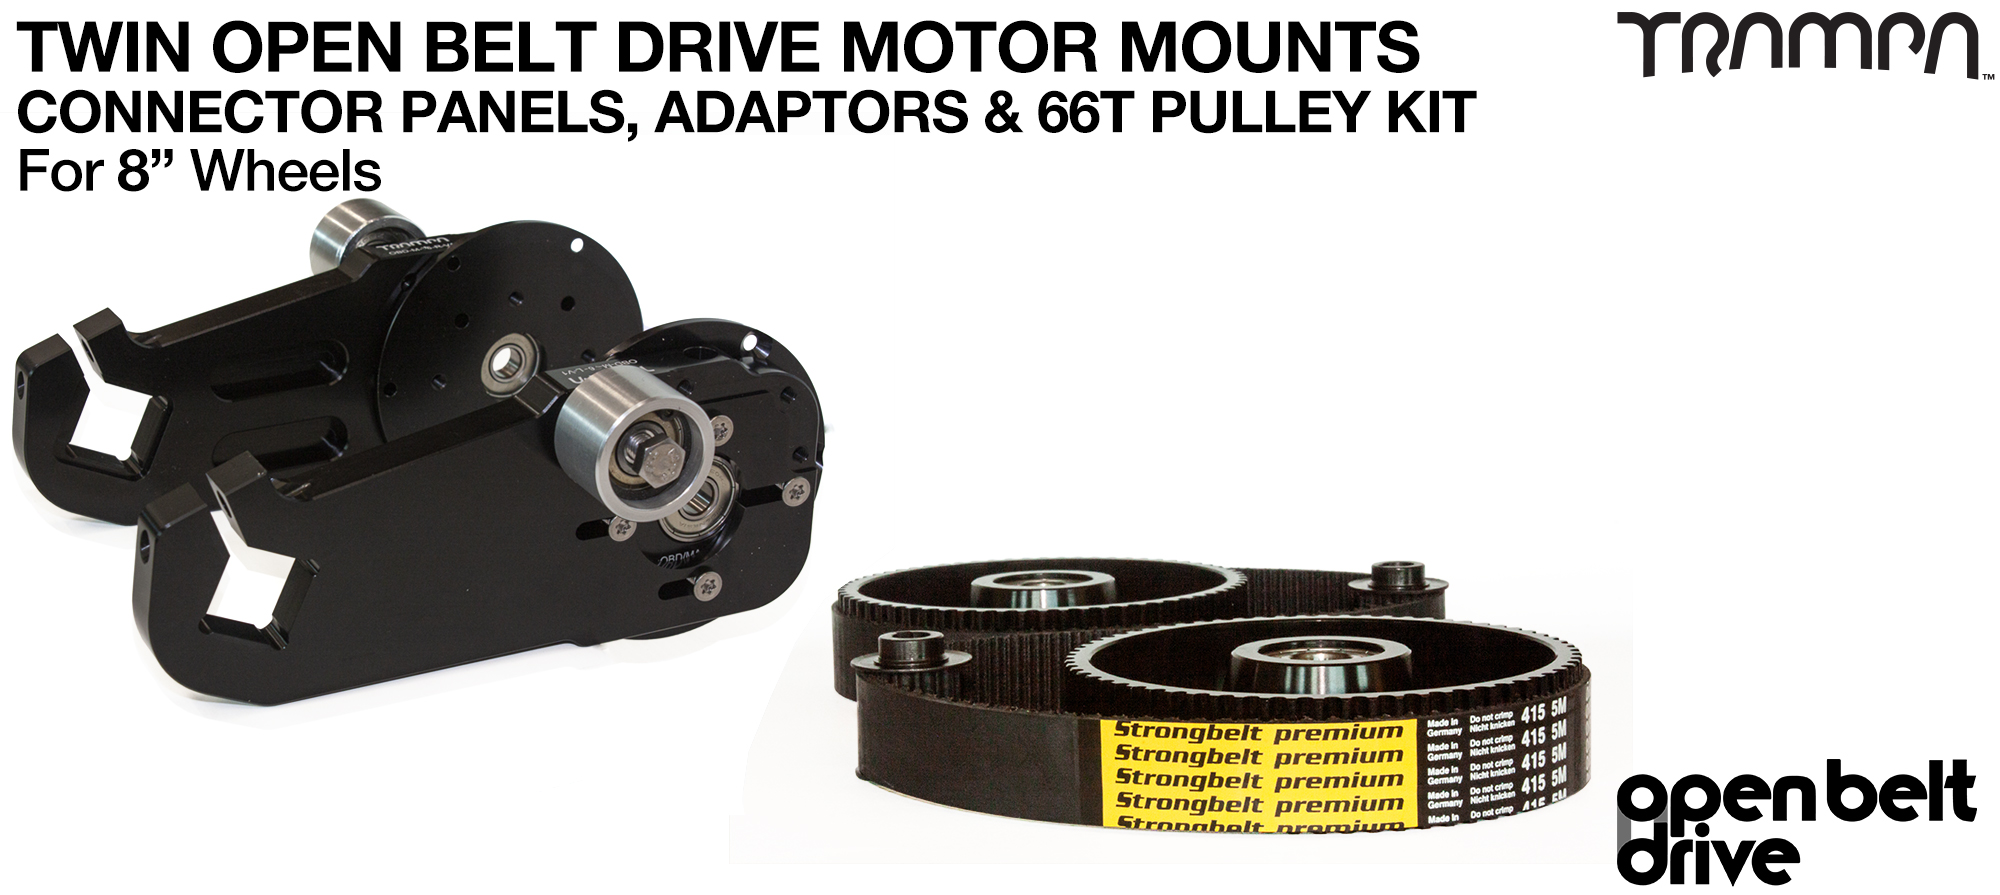 66T OBD Motor Mount & 66 tooth Pulley for 8 Inch Wheel - TWIN